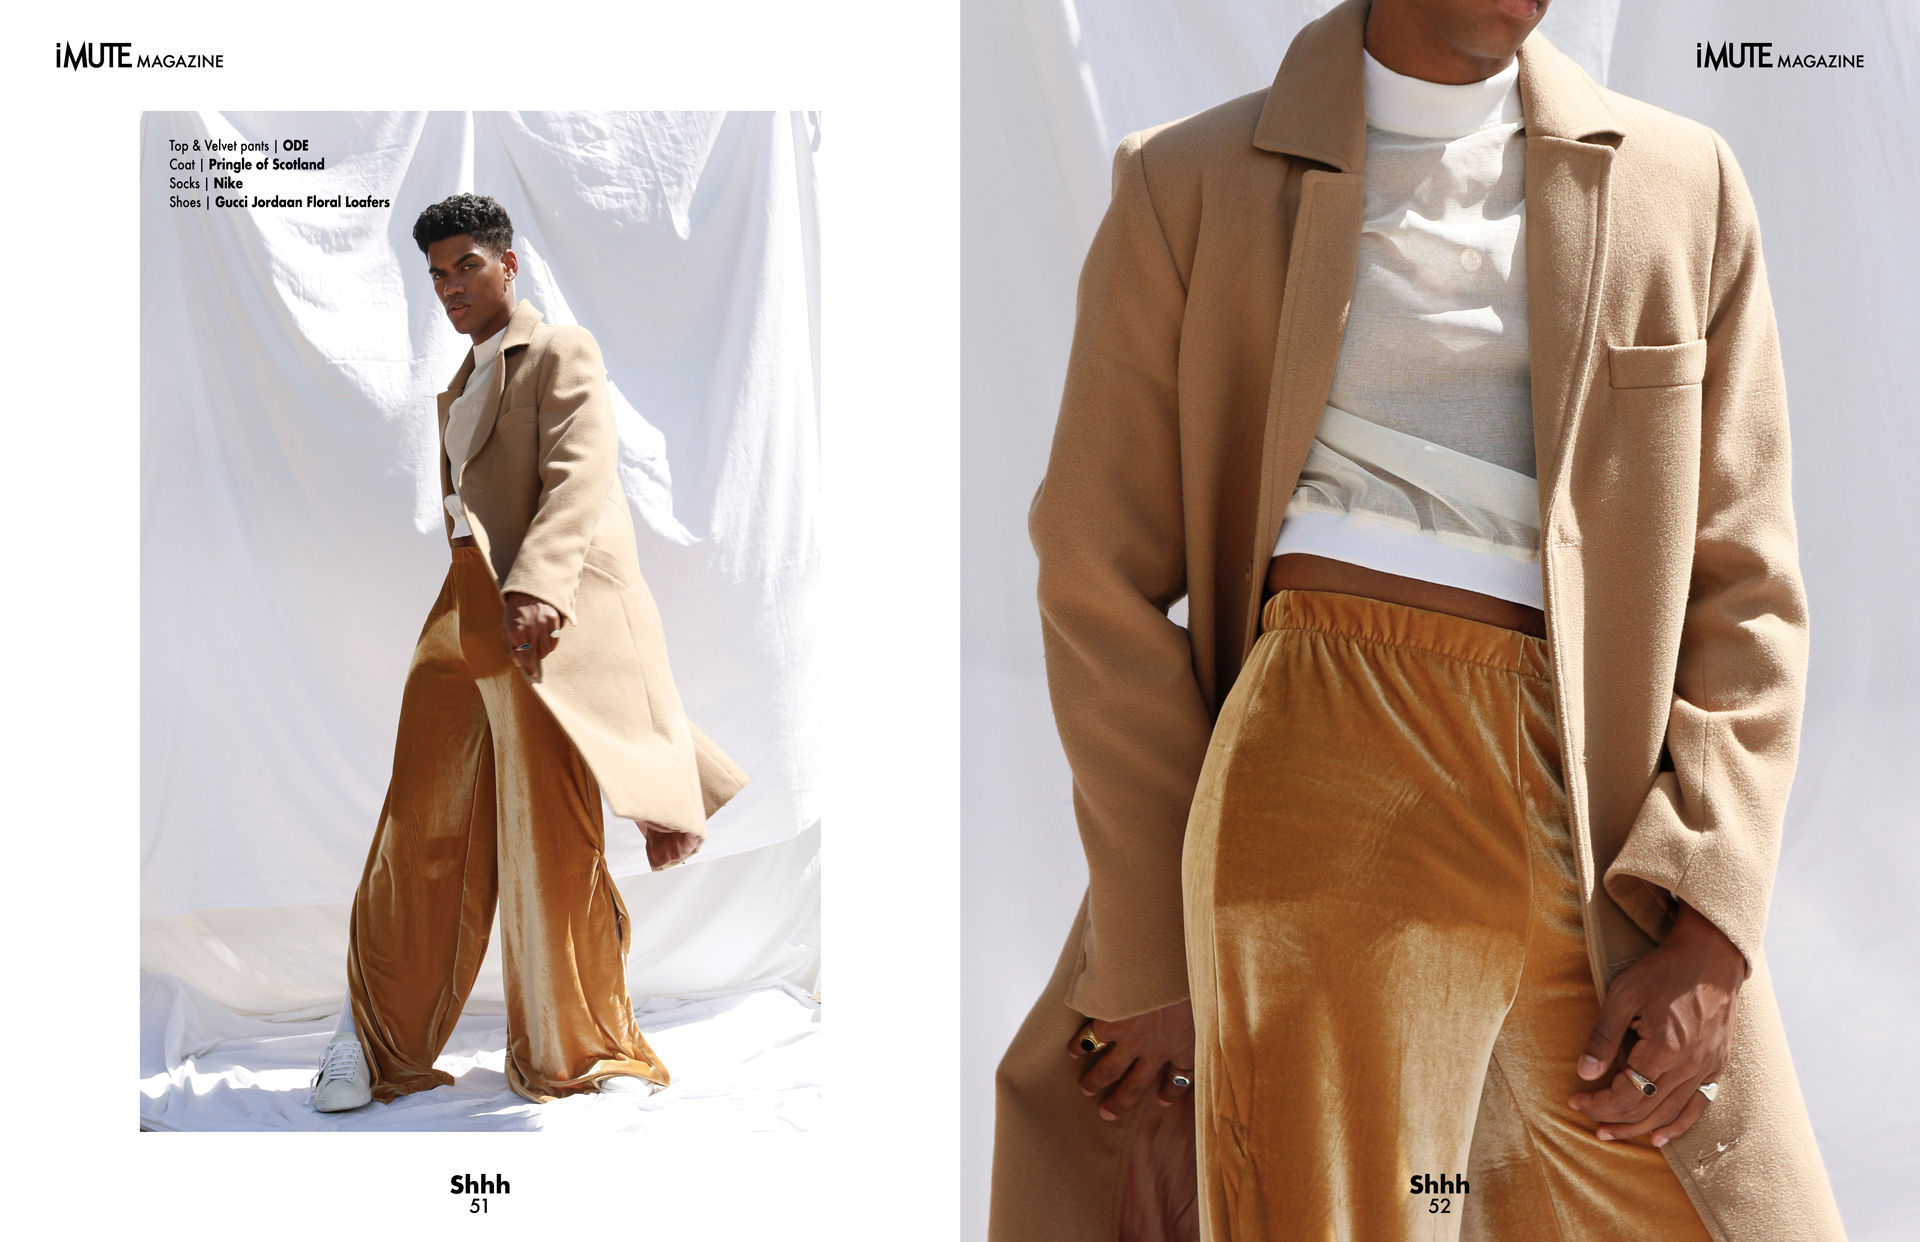 Coloured | Cover story iMute Magazine Fall Issue no 20 Photographer|Gemma Shepherd Model| Nicolas Van Graan @ 20 Management Stylists|Imran Mohamed & Rebecca Odendaal